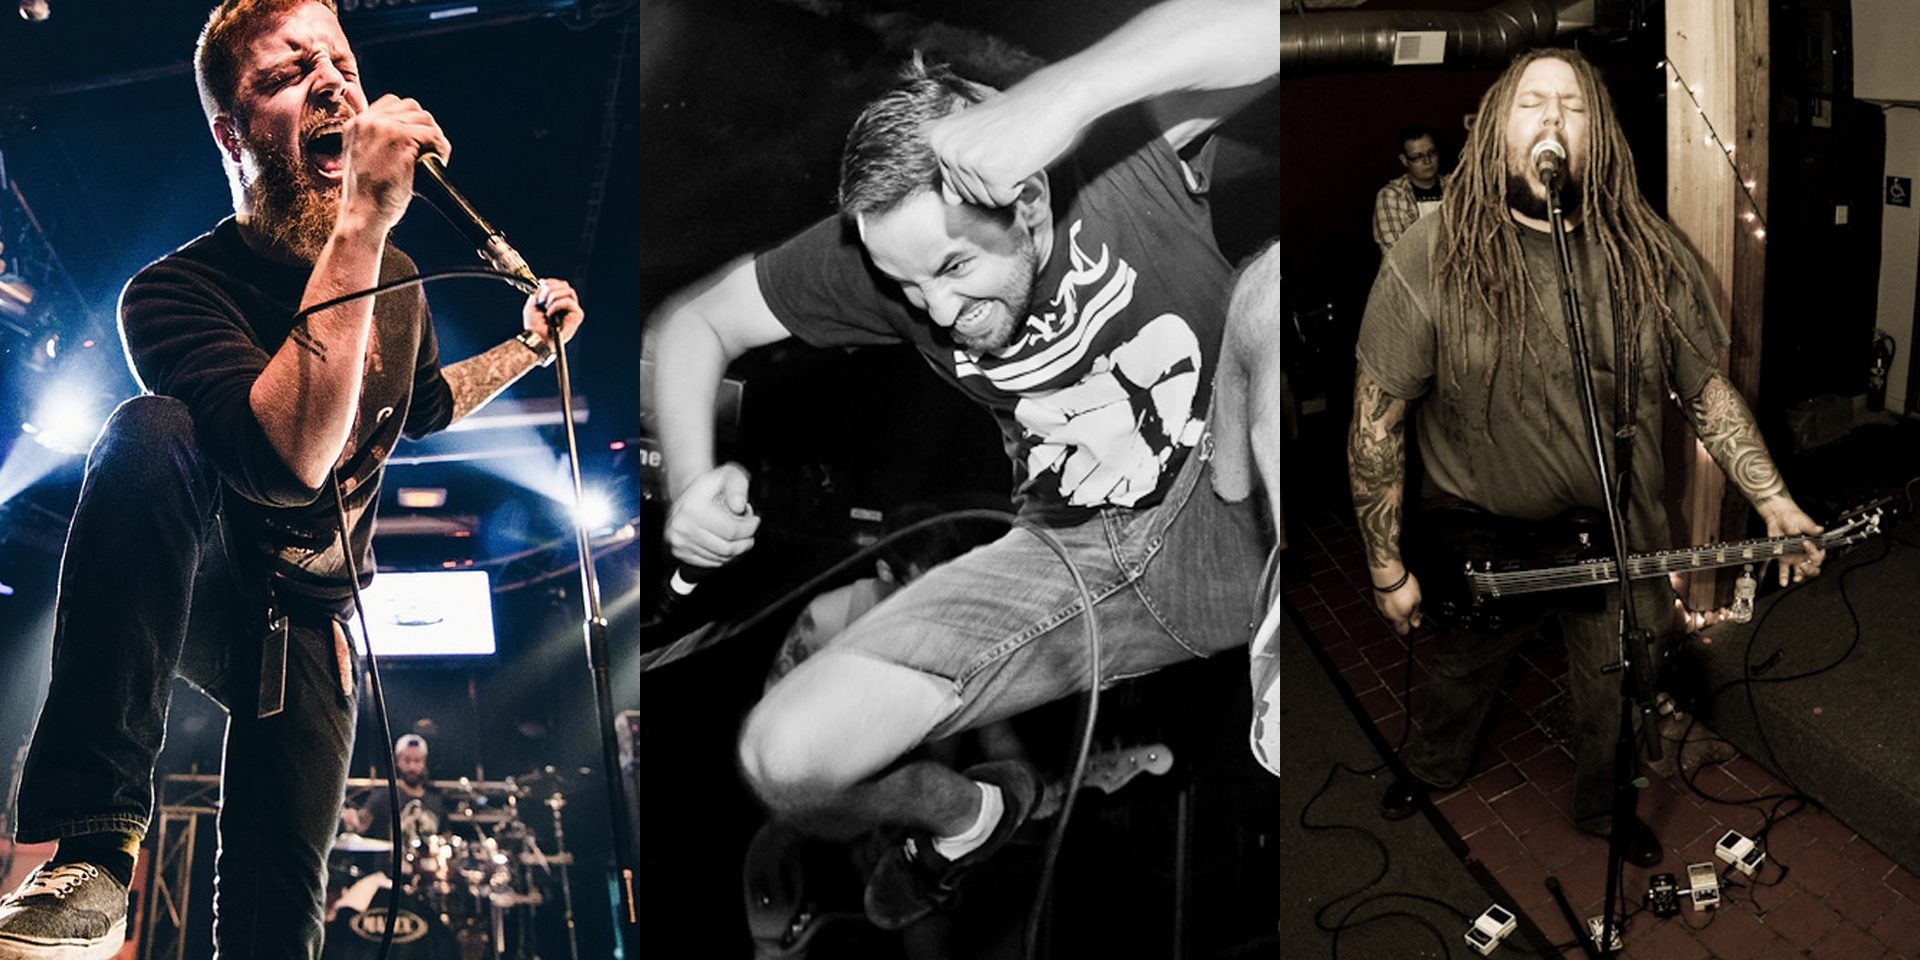 Protest the Hero, Weekend Nachos and Primitive Man to invade Singapore in April